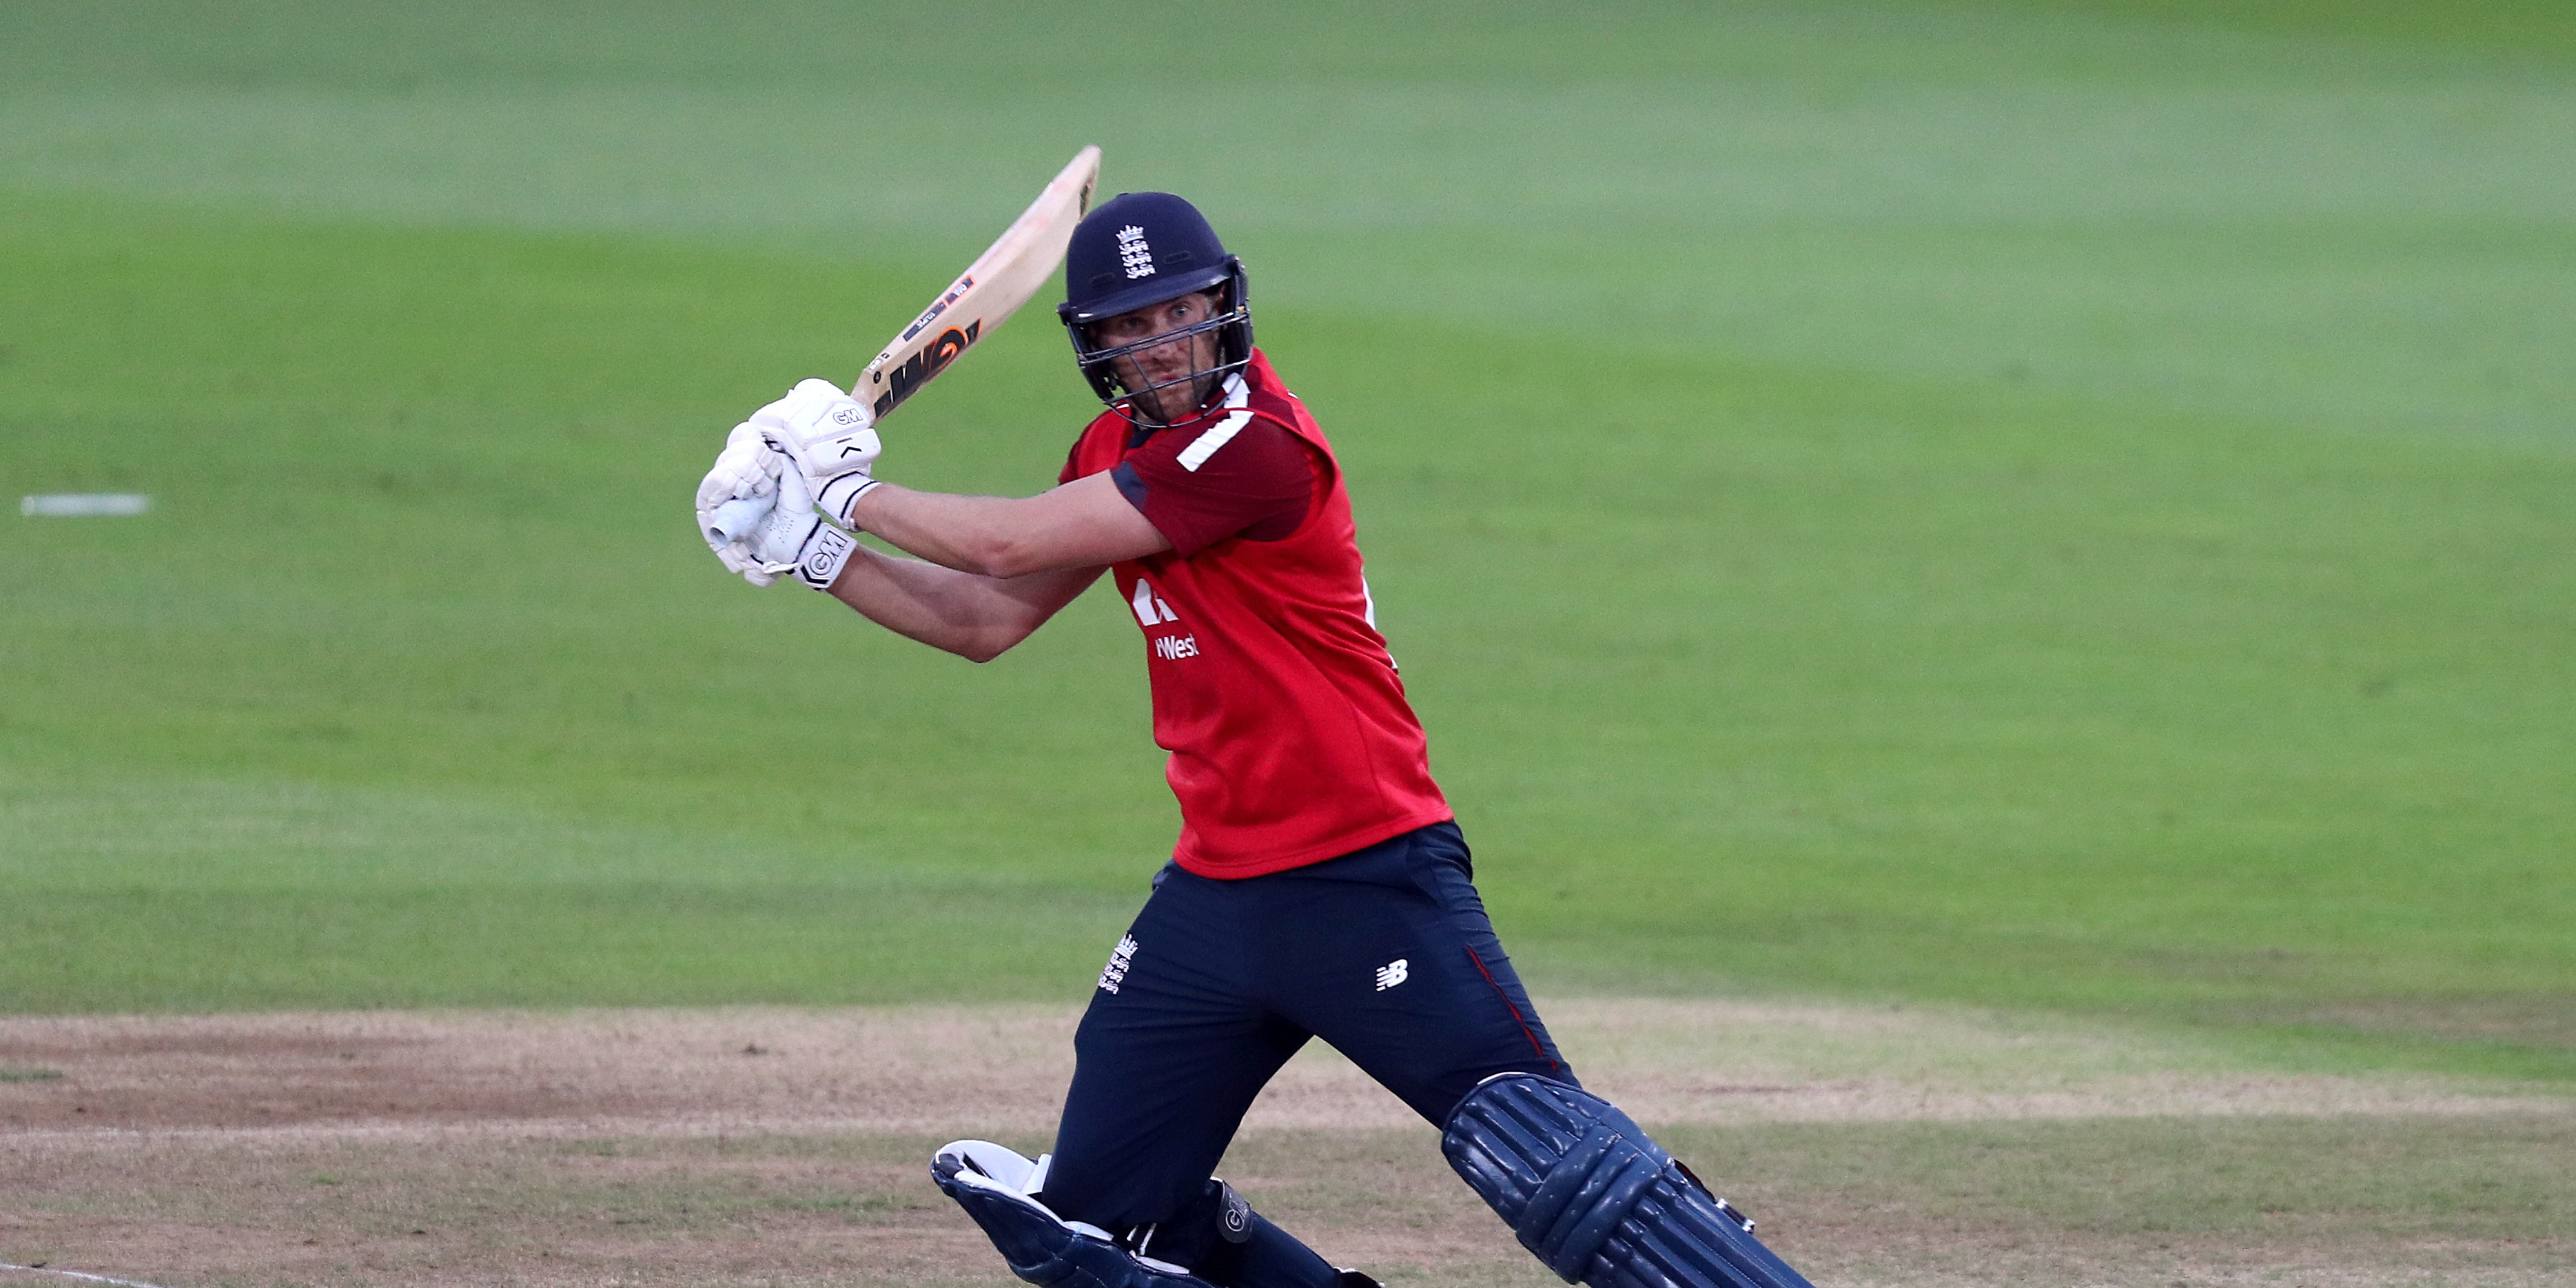 Dawid Malan's unbeaten 99 propels England to third T20 win over South Africa